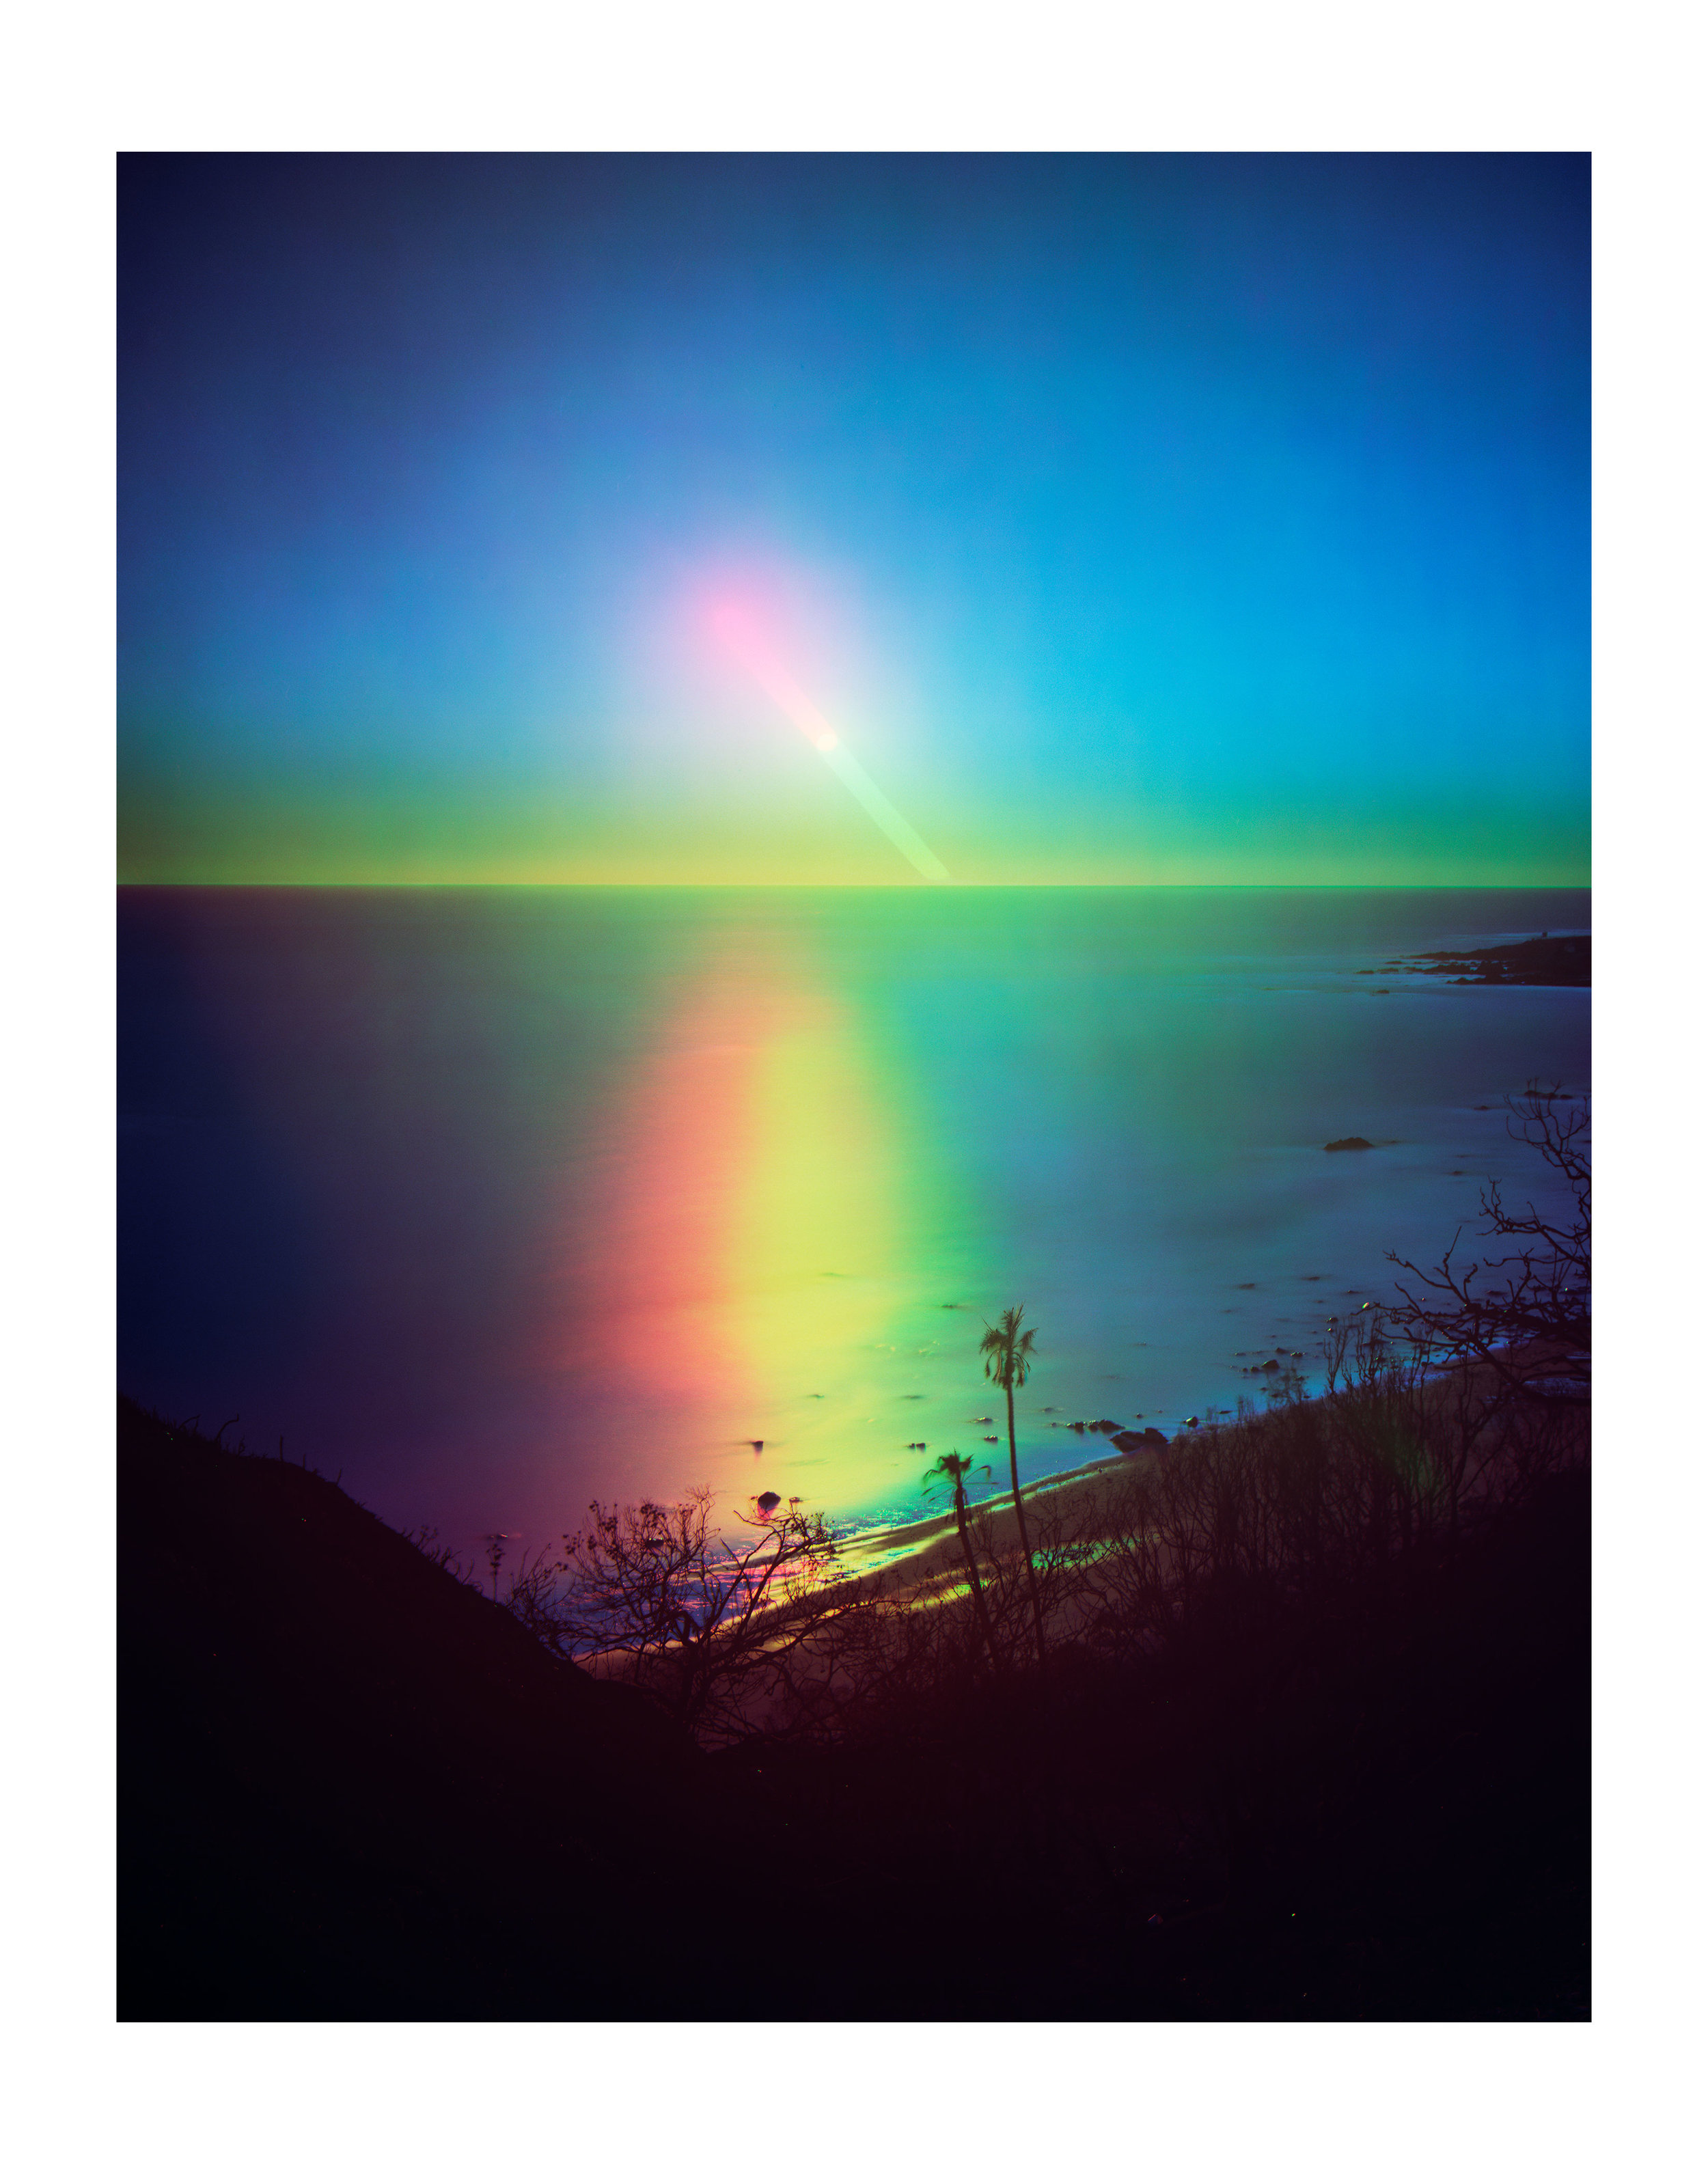 "FLORIAN MAIER-AICHEN ""UNTITLED (SUNSET)"" 2019. C-PRINT. 89 x 70 3/8 INCHES. © FLORIAN MAIER-AICHEN. COURTESY OF THE ARTIST AND BLUM & POE, LOS ANGELES / NEW YORK / TOKYO"